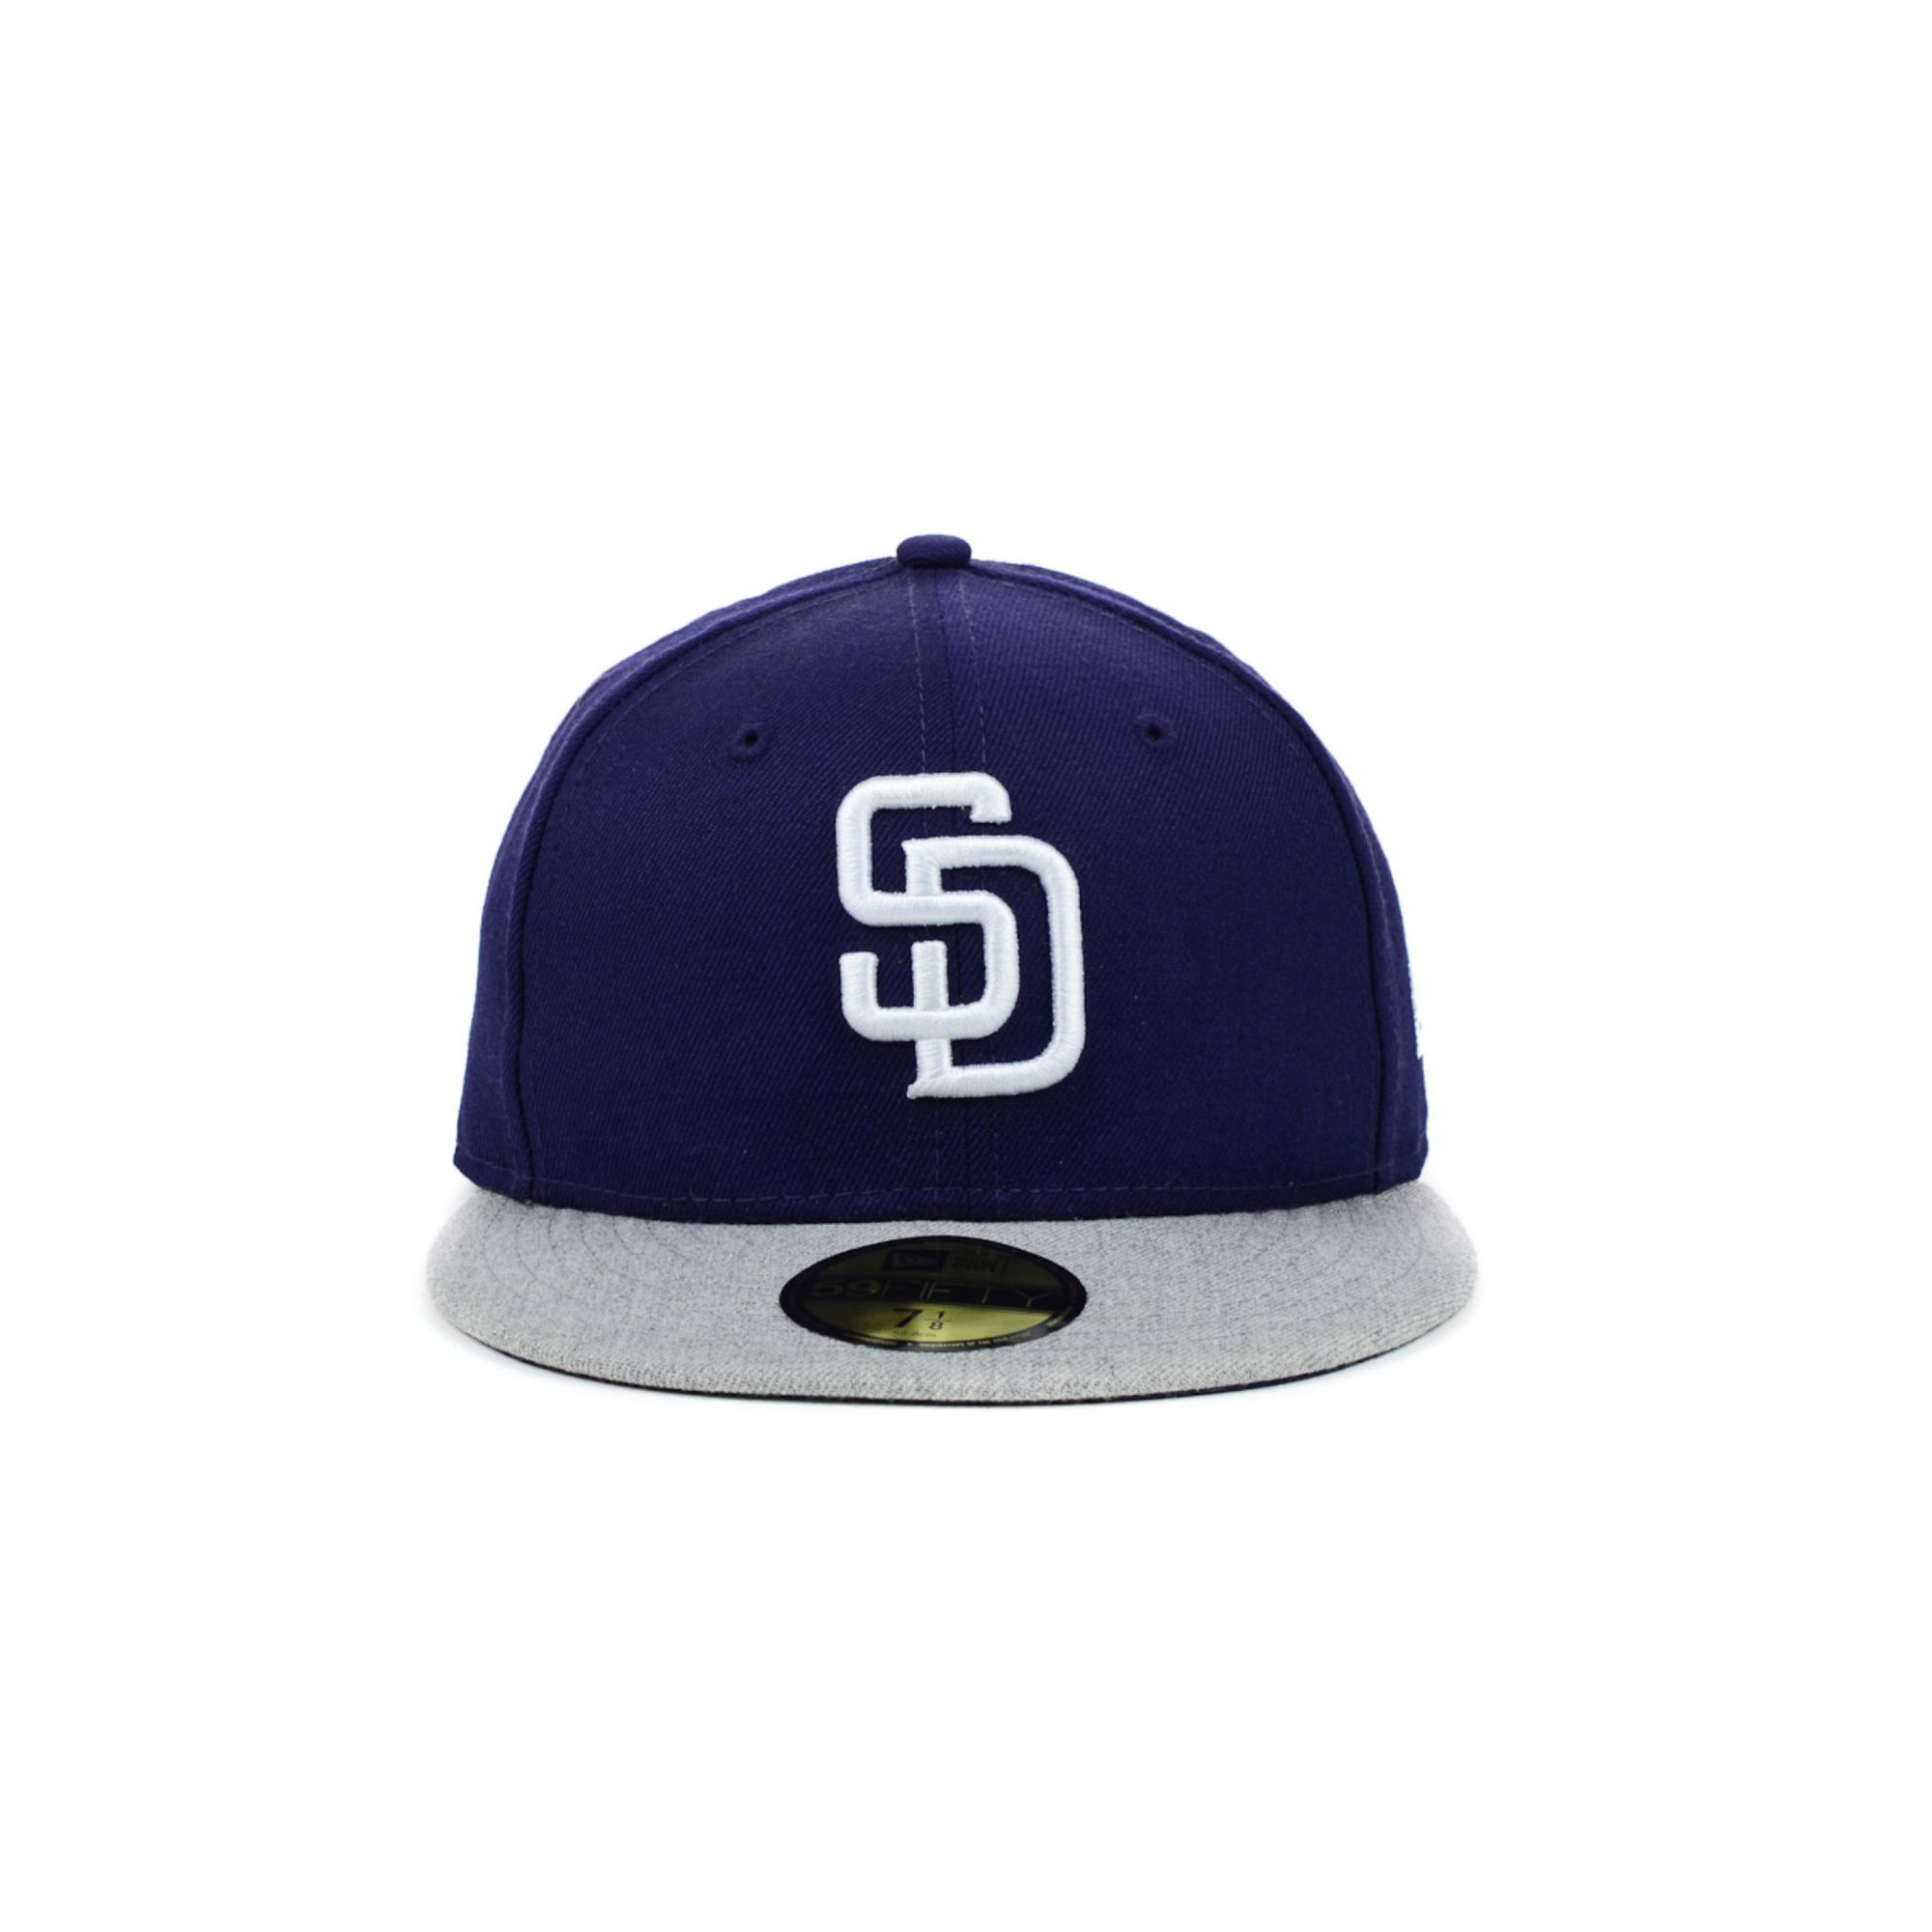 buy online 21615 e9d06 ... reduced lyst ktz san diego padres mlb team heather 59fifty cap in blue  for men 95378